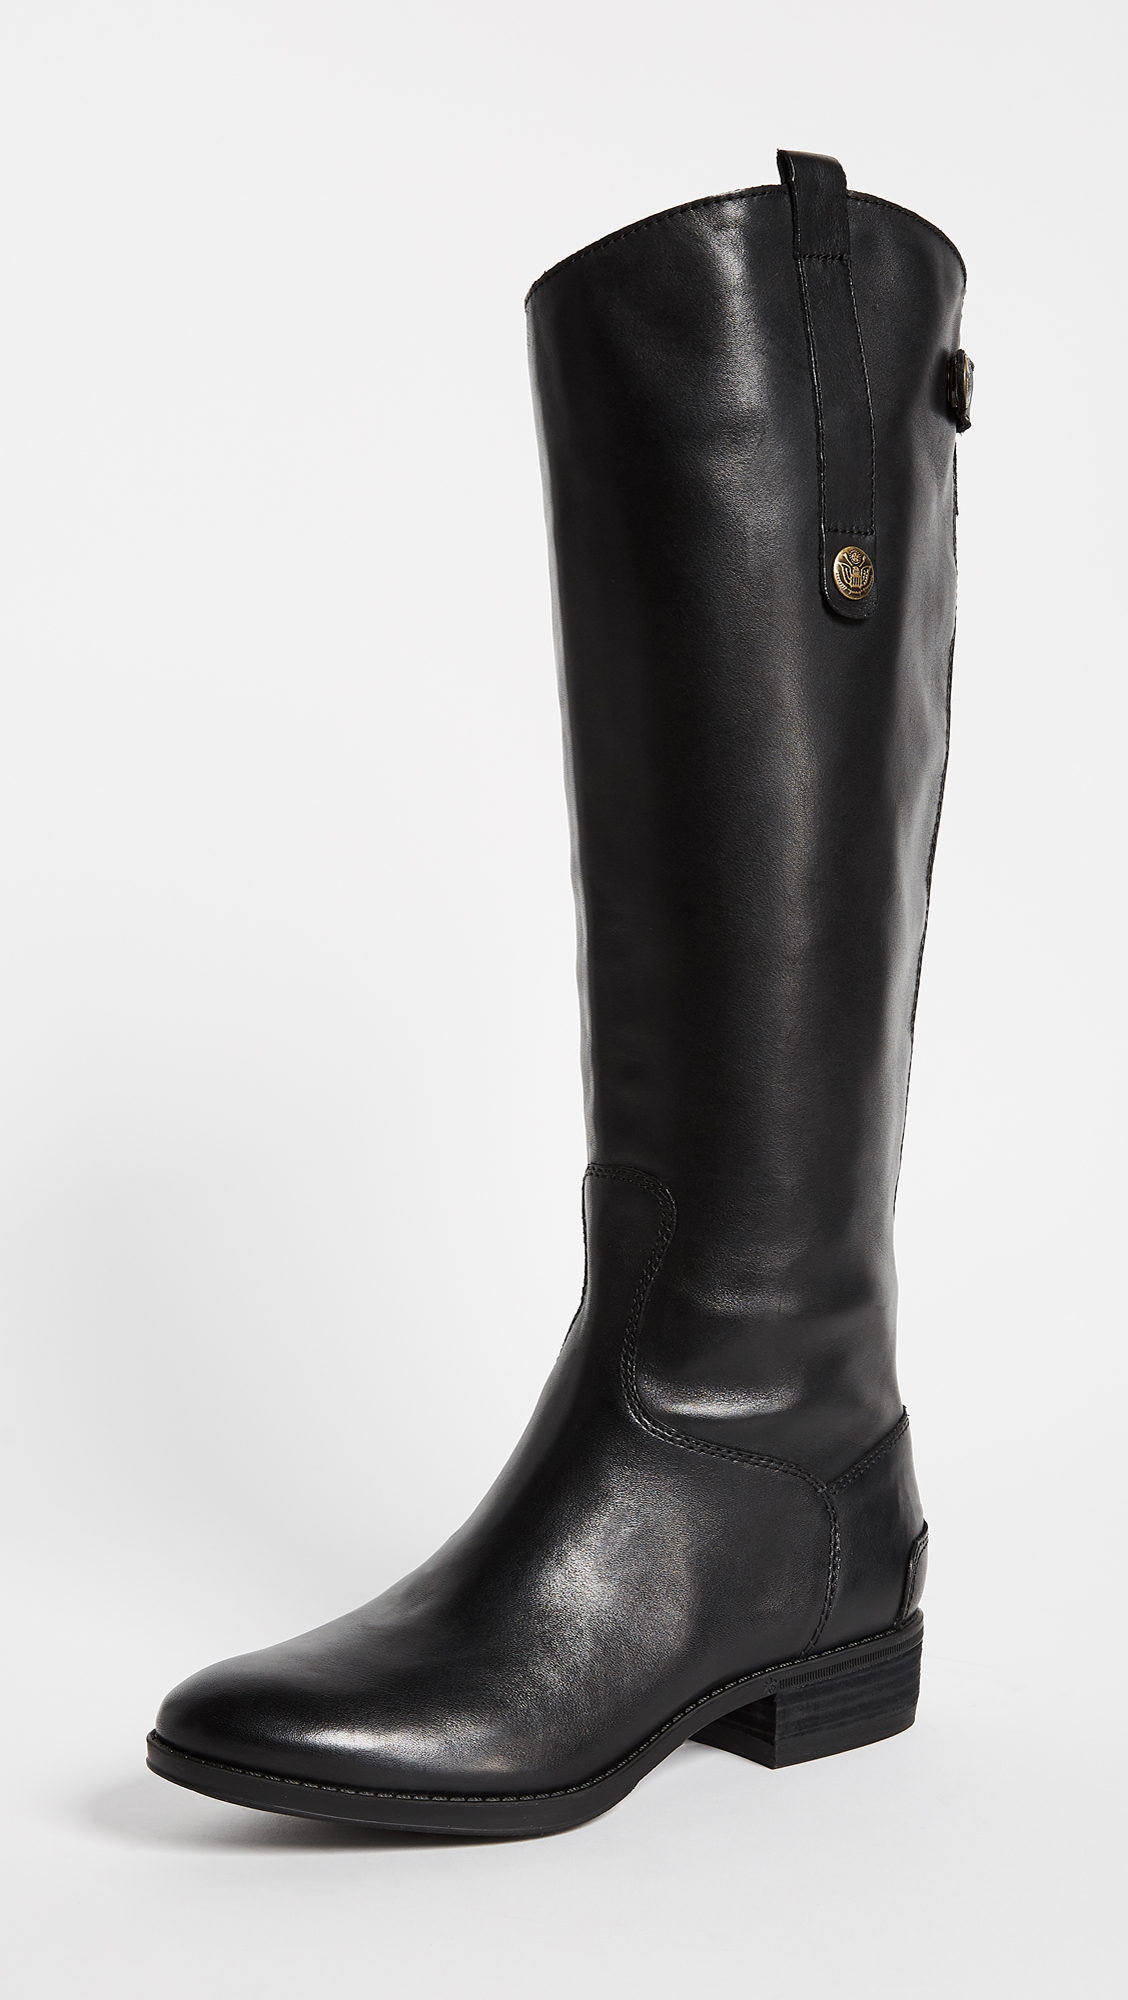 Sam Edelman - Penny Riding Boots $150.00